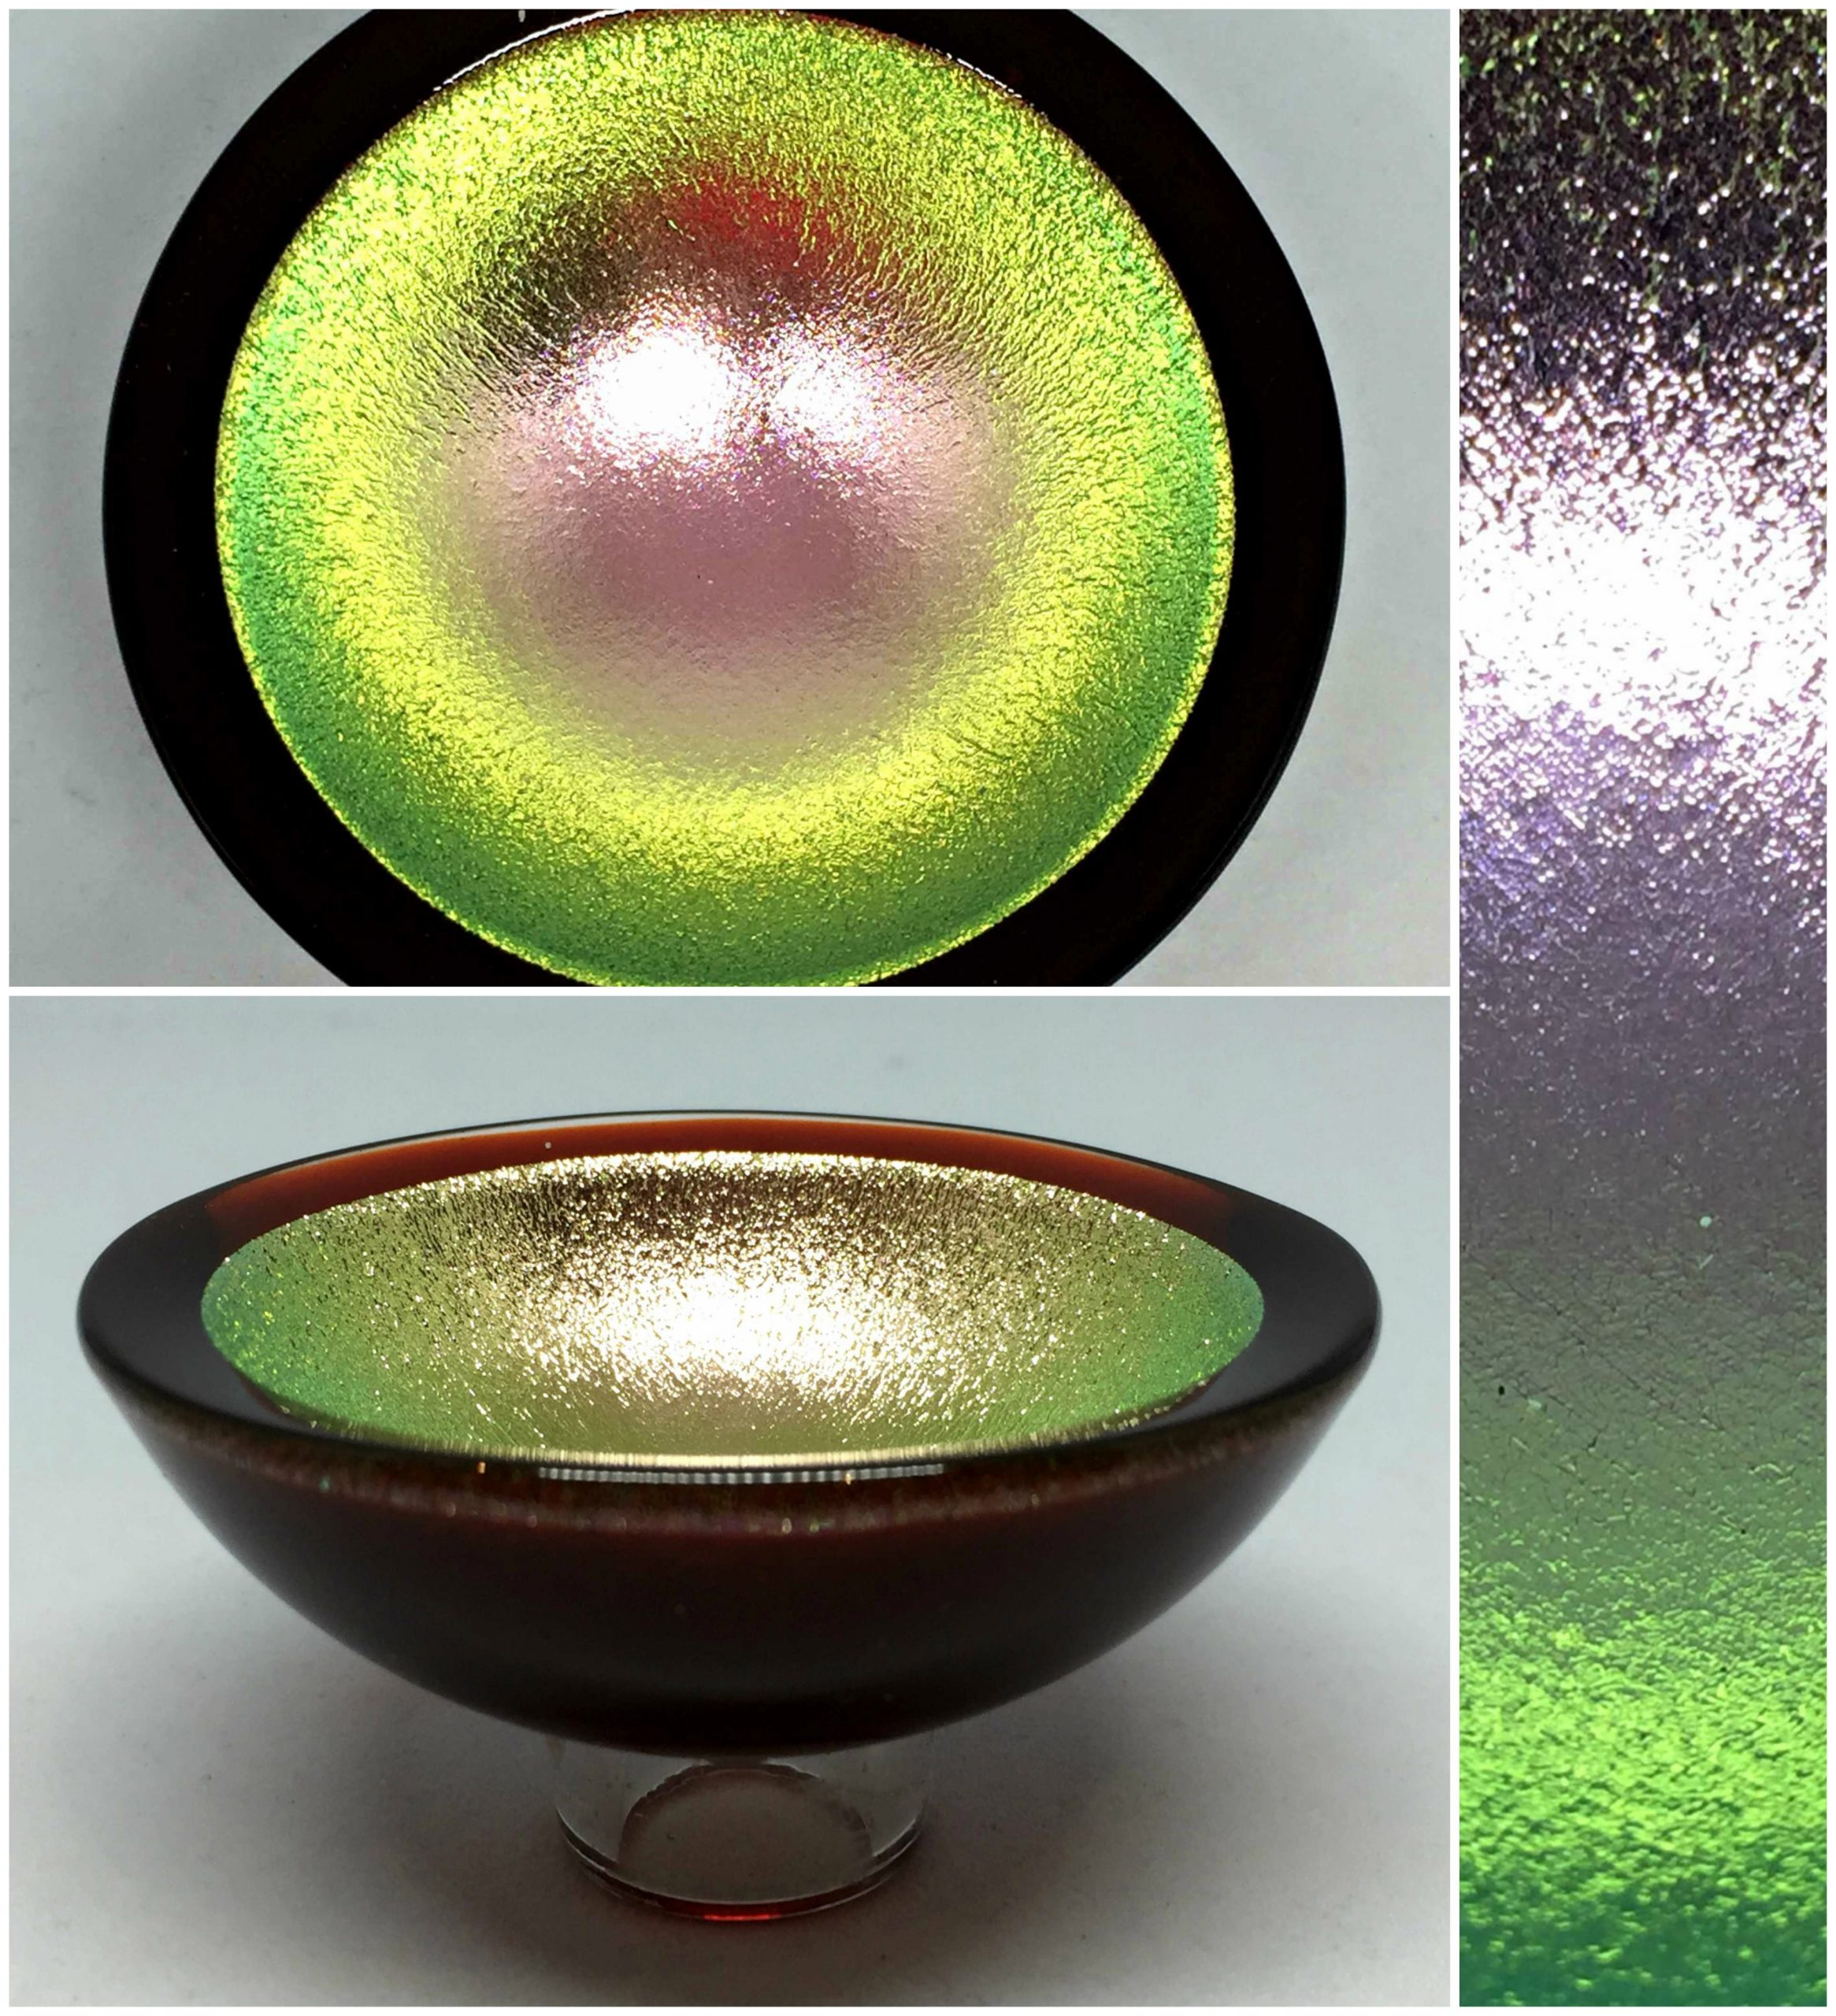 Thing of Beauty 3362, one-of-a-kind multichrome dichroic glass bowl by Jo Ludwig | Effusion Art Gallery + Glass Studio, Invermere BC